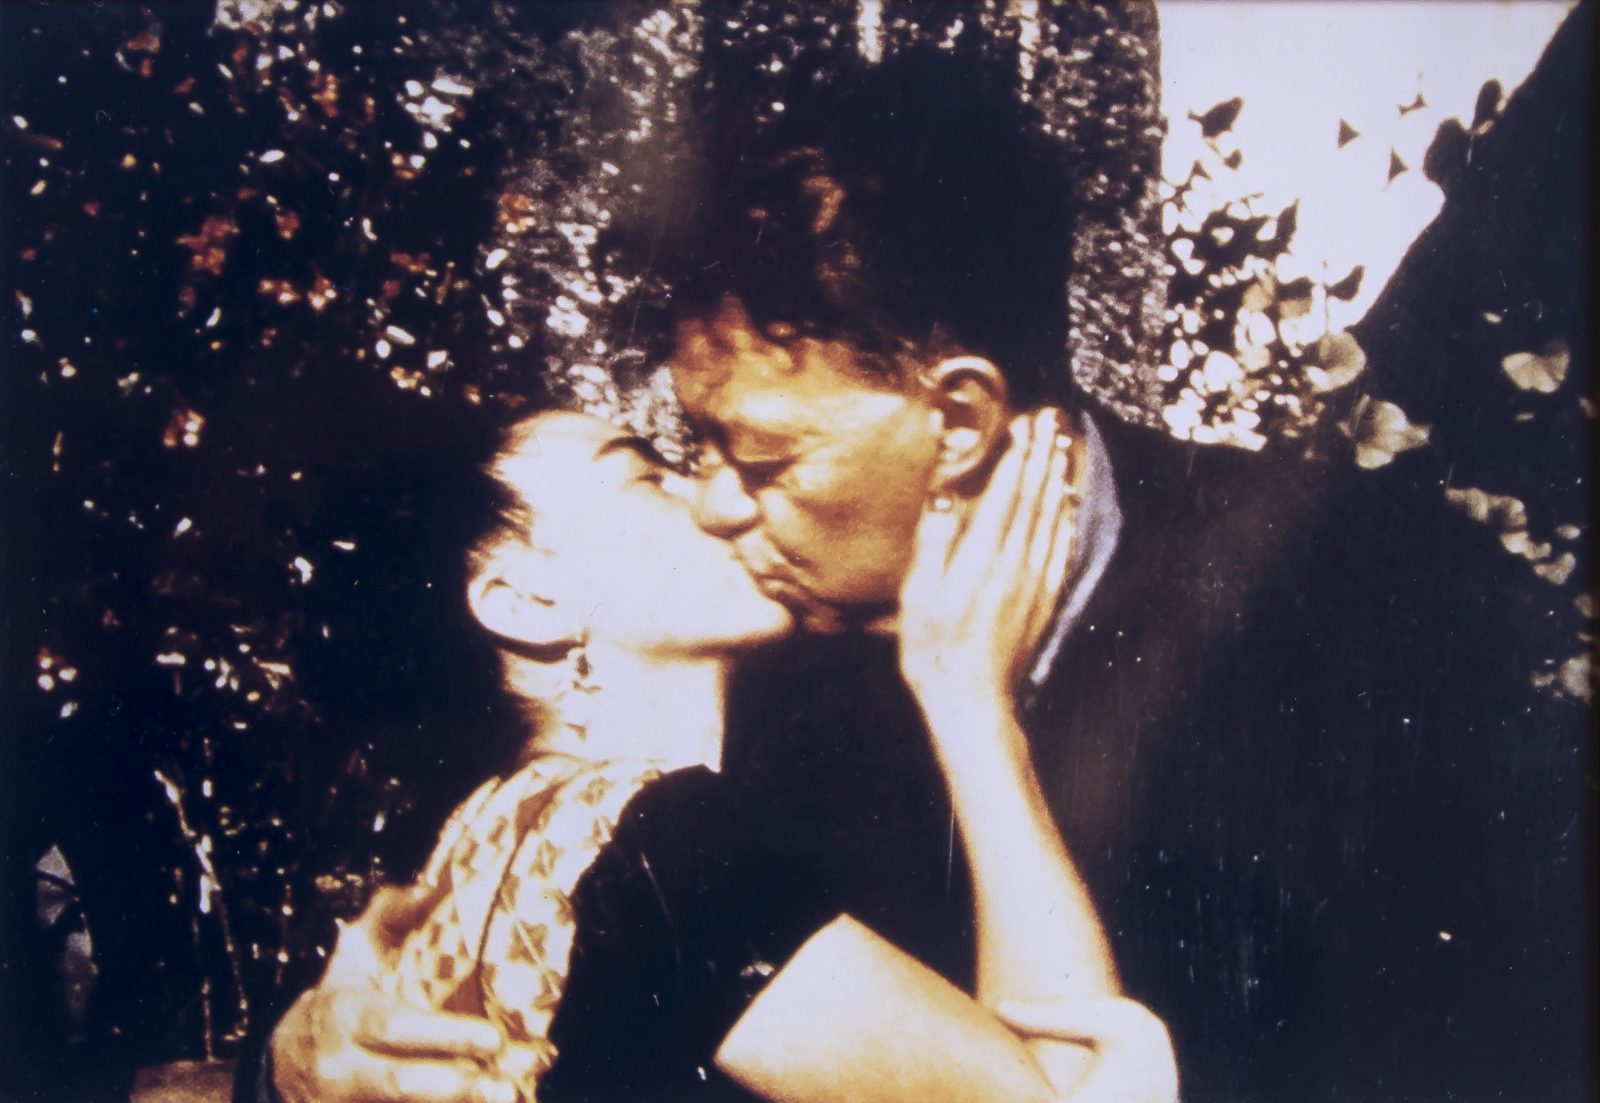 Frida and Diego in the garden of the Blue House, Florence Arquín Coyoacán, Mexico City, 1942.